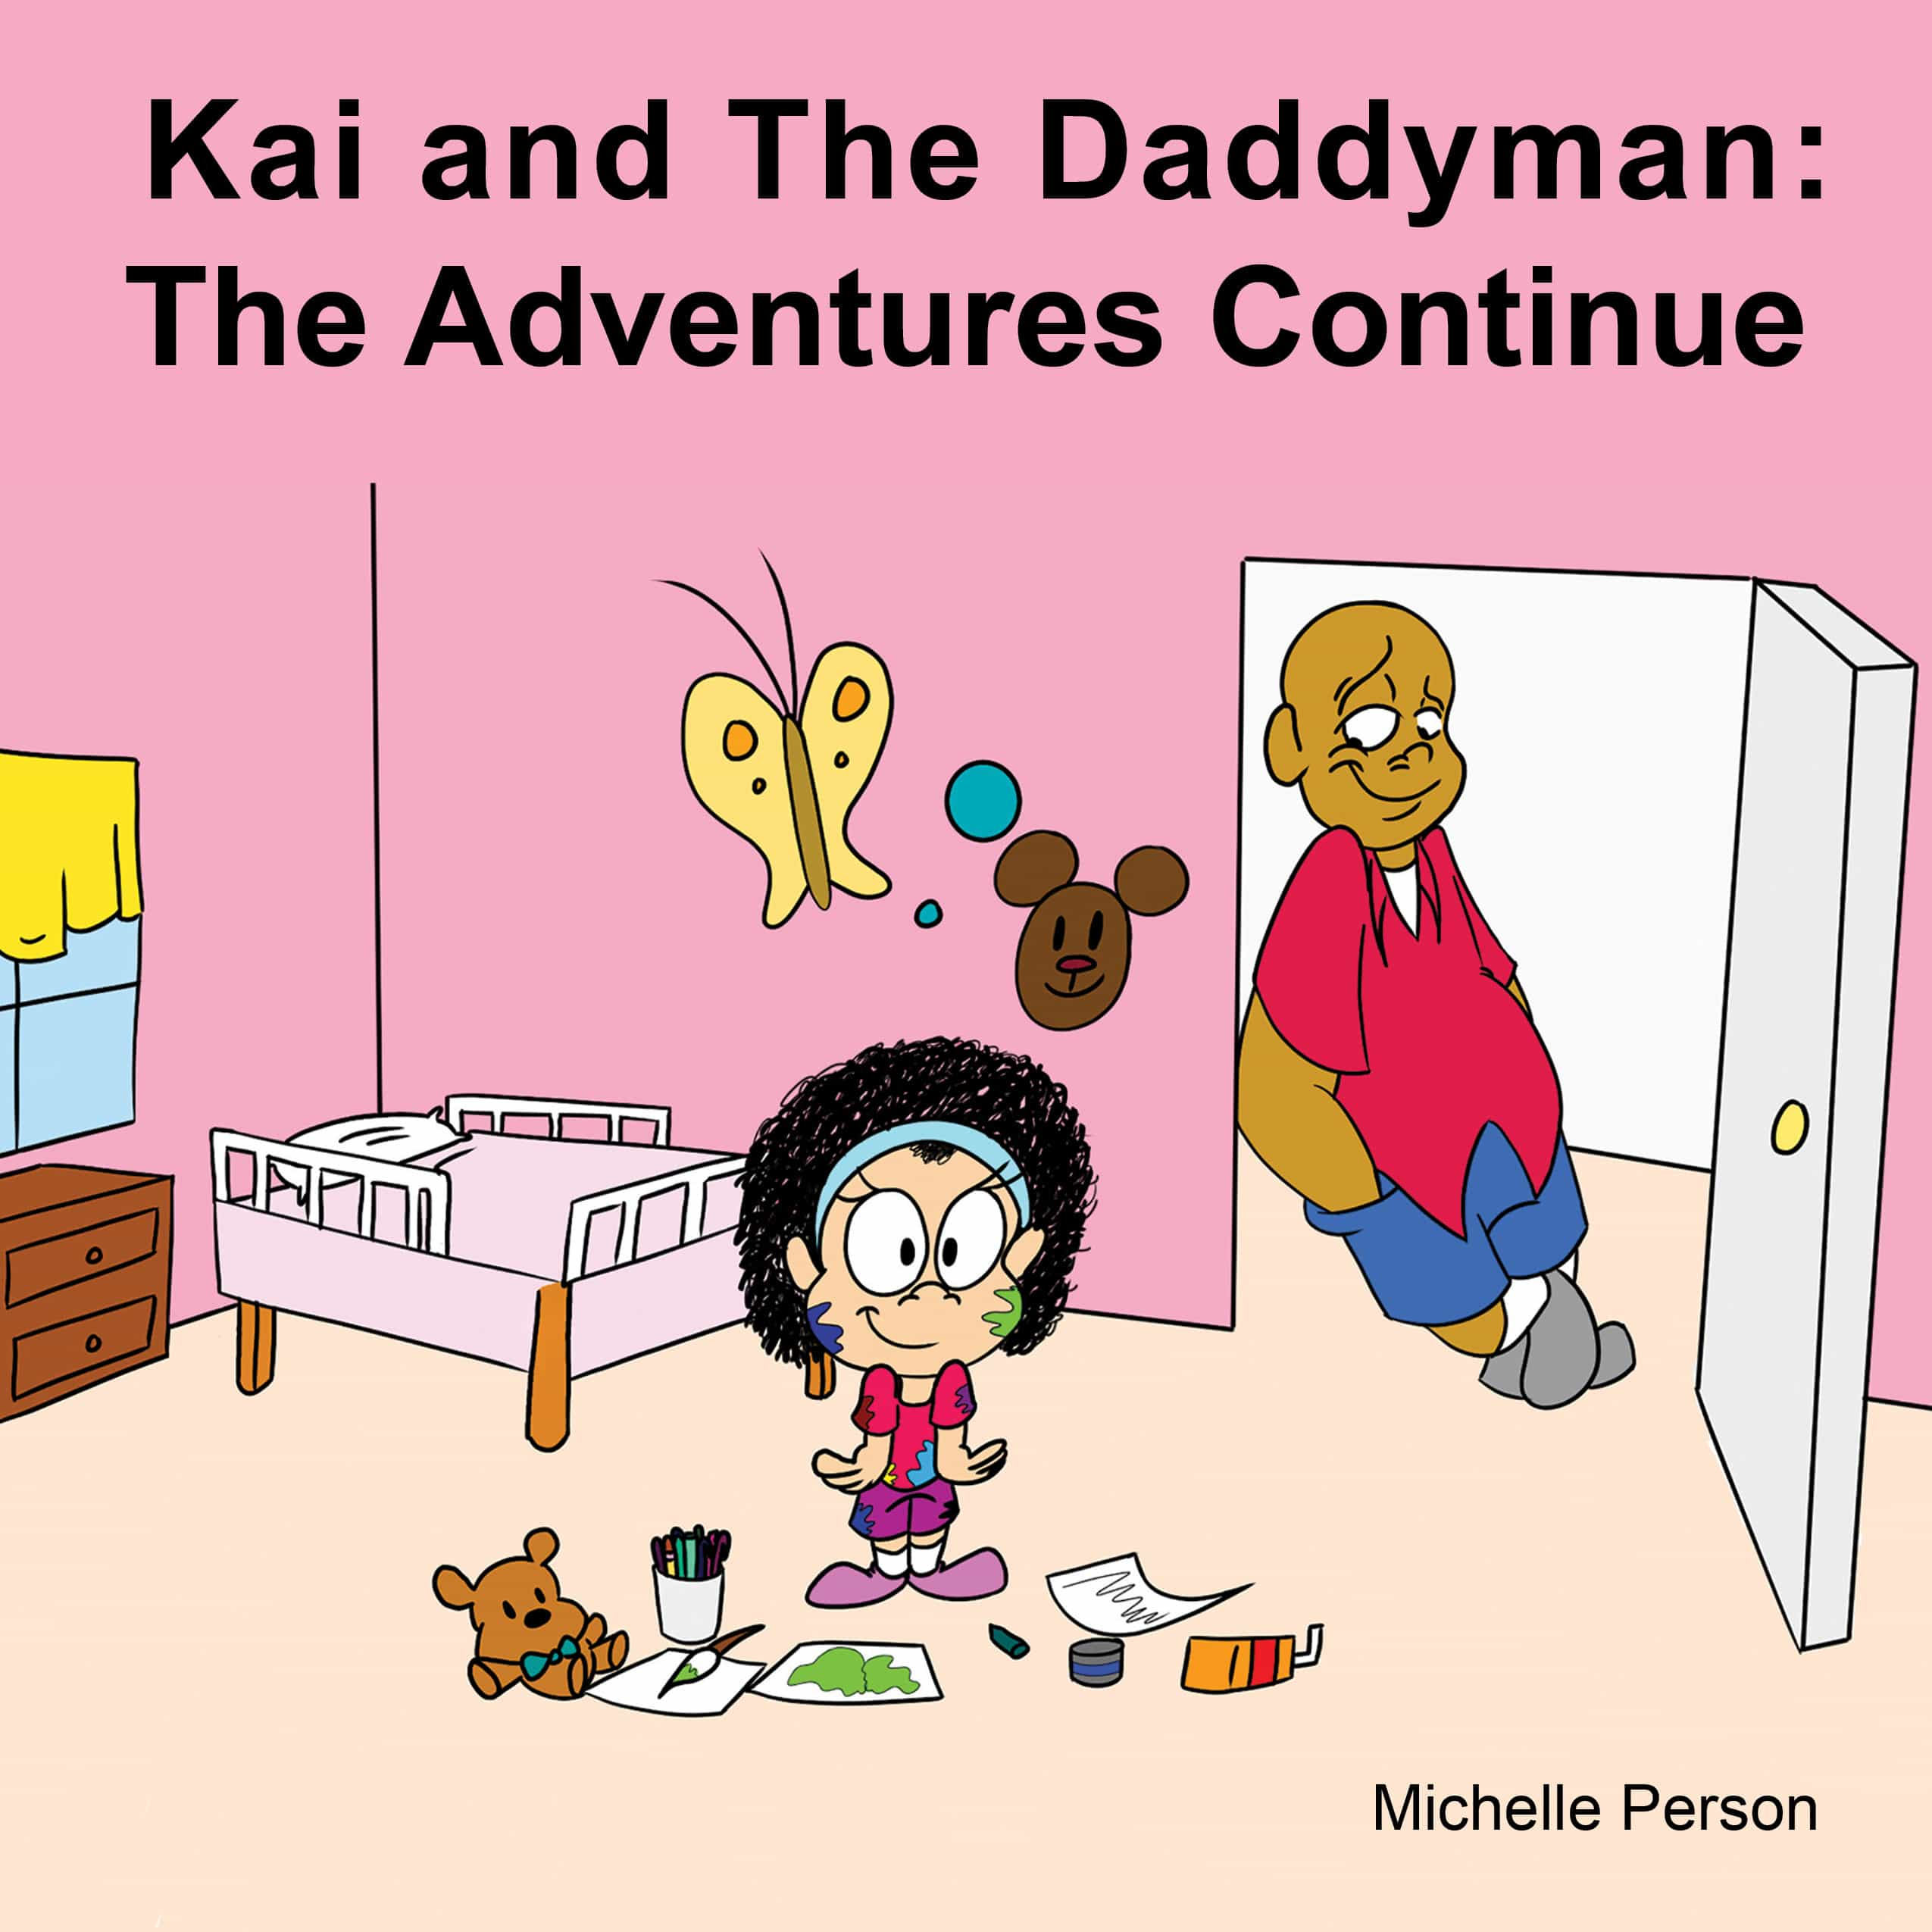 Kai and the Daddyman: The Adventures Continue